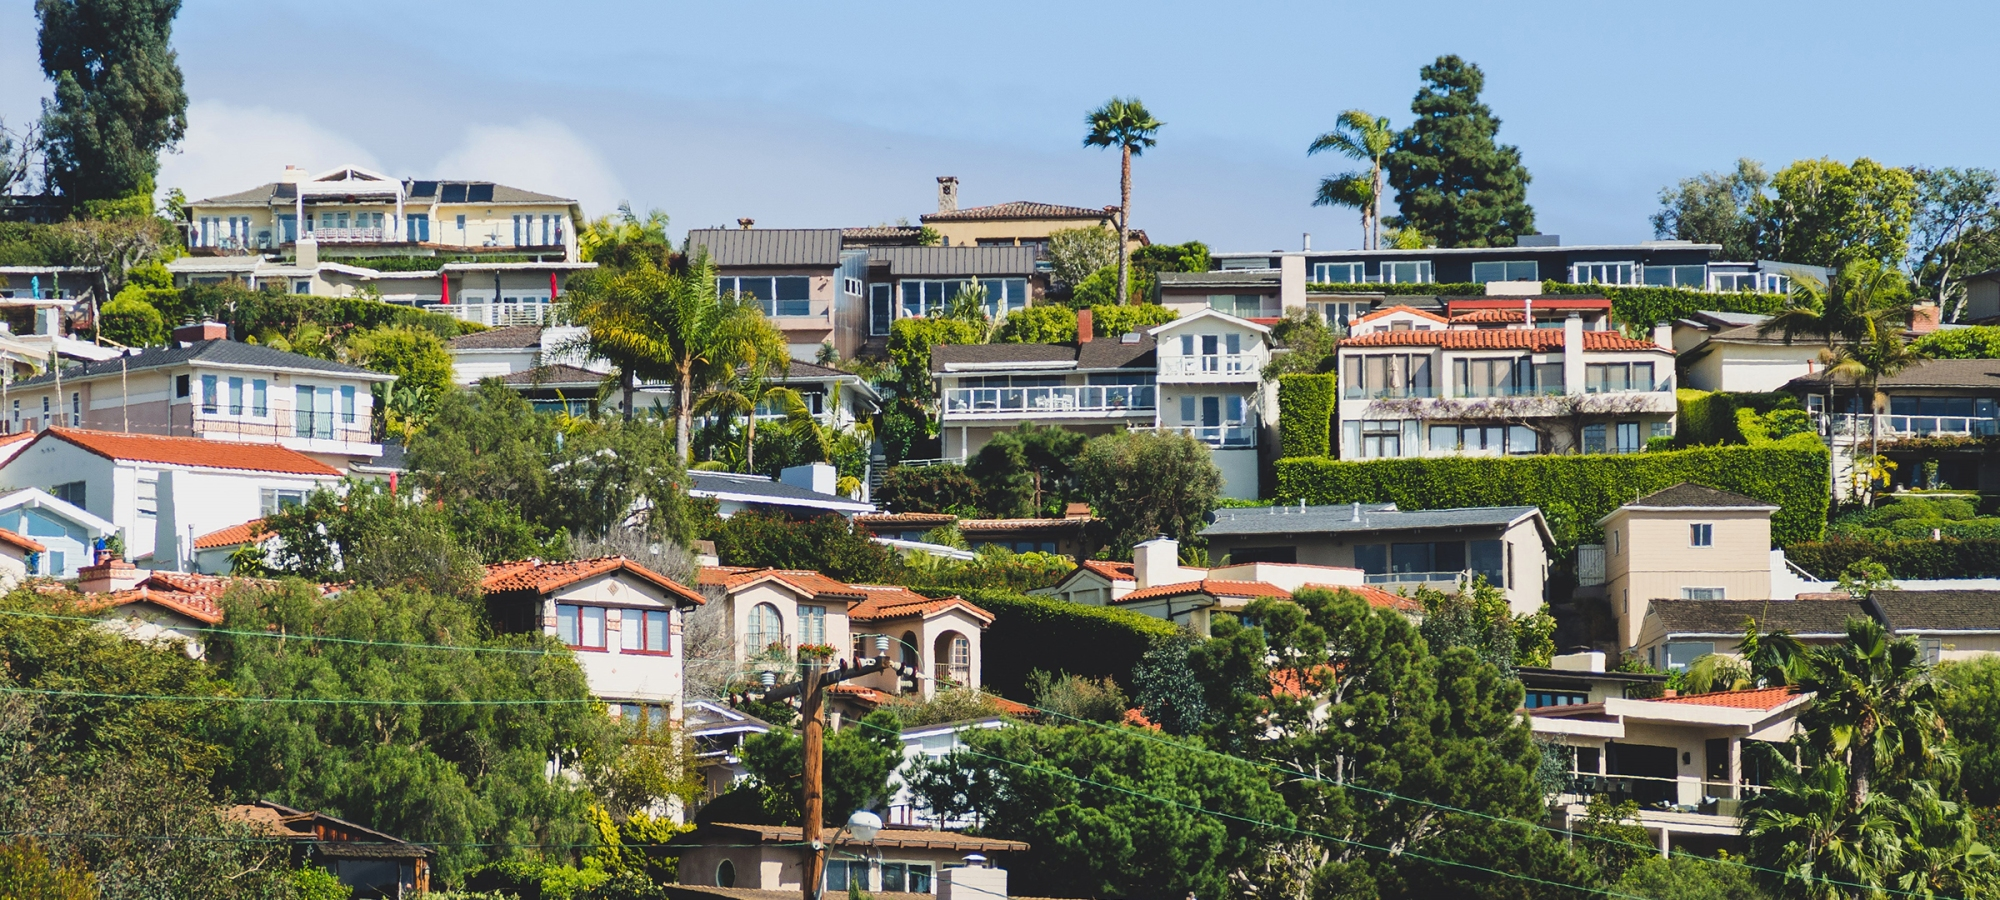 Laguna Beach Homes will ther be a foreclosure wave